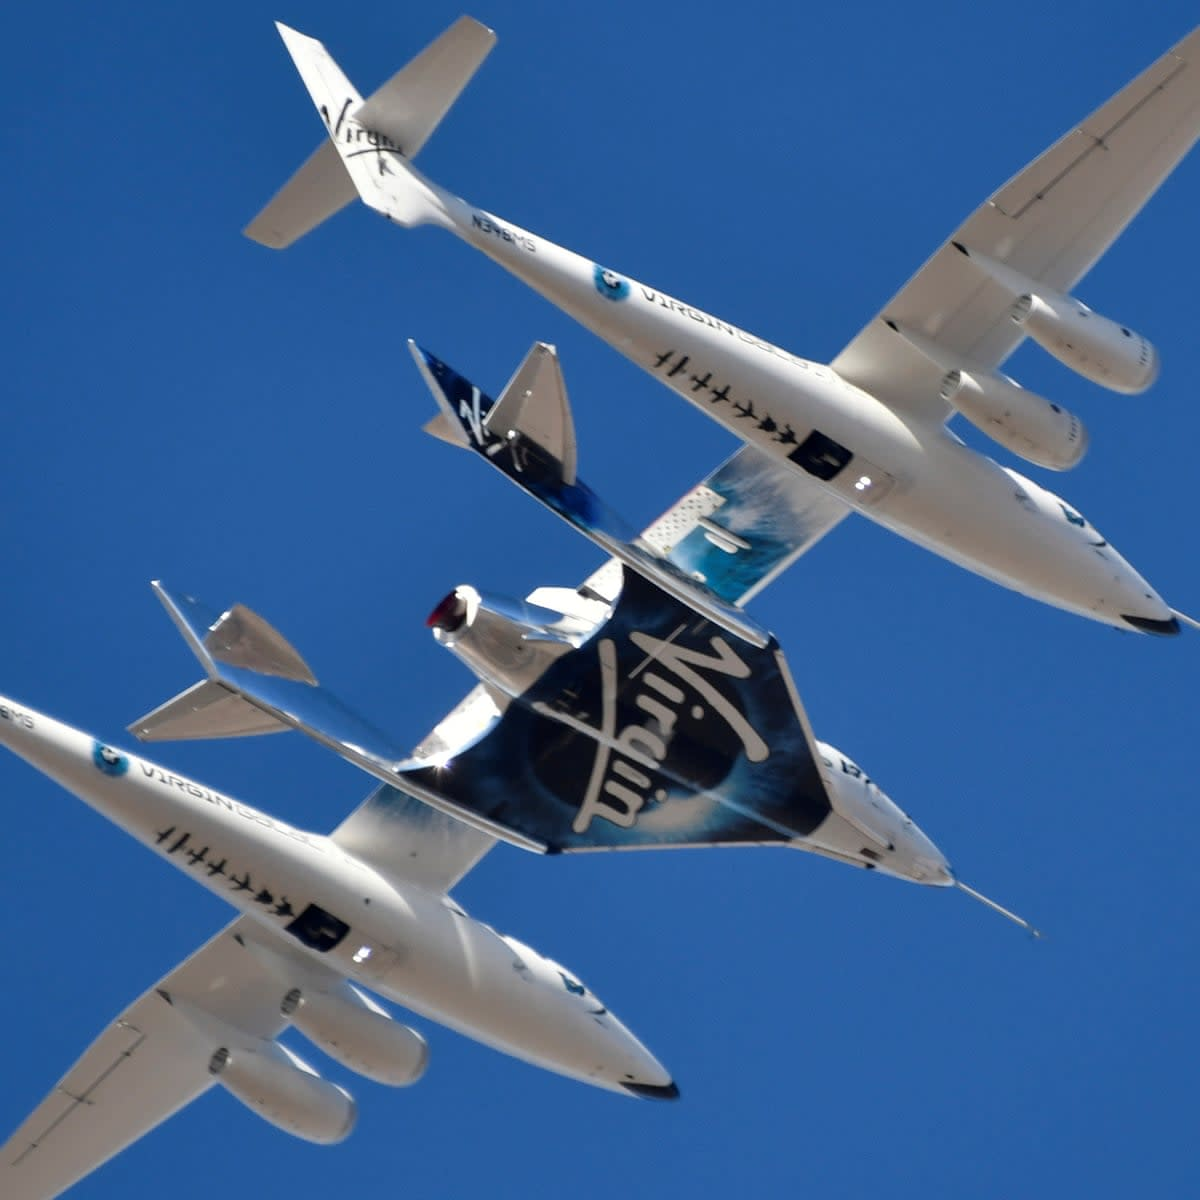 Figure 1:The Virgin Galactic rocket plane, the WhiteKnightTwo carrier airplane, with SpaceShipTwo passenger craft takes off from Mojave Air and Space Port in Mojave, California.